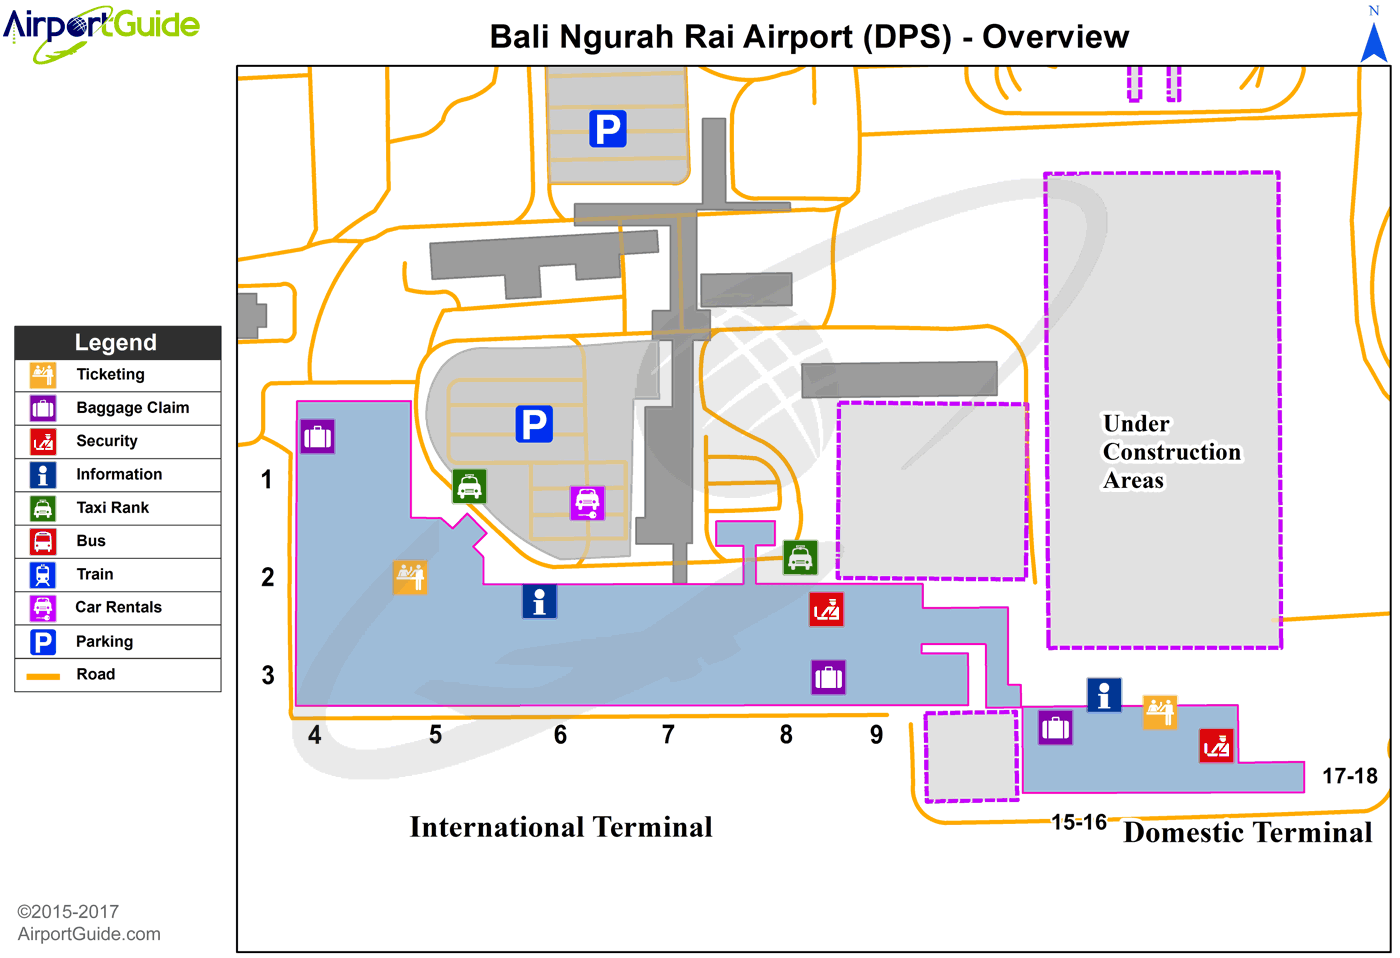 DenpasarBali Island Ngurah Rai Bali International DPS Airport